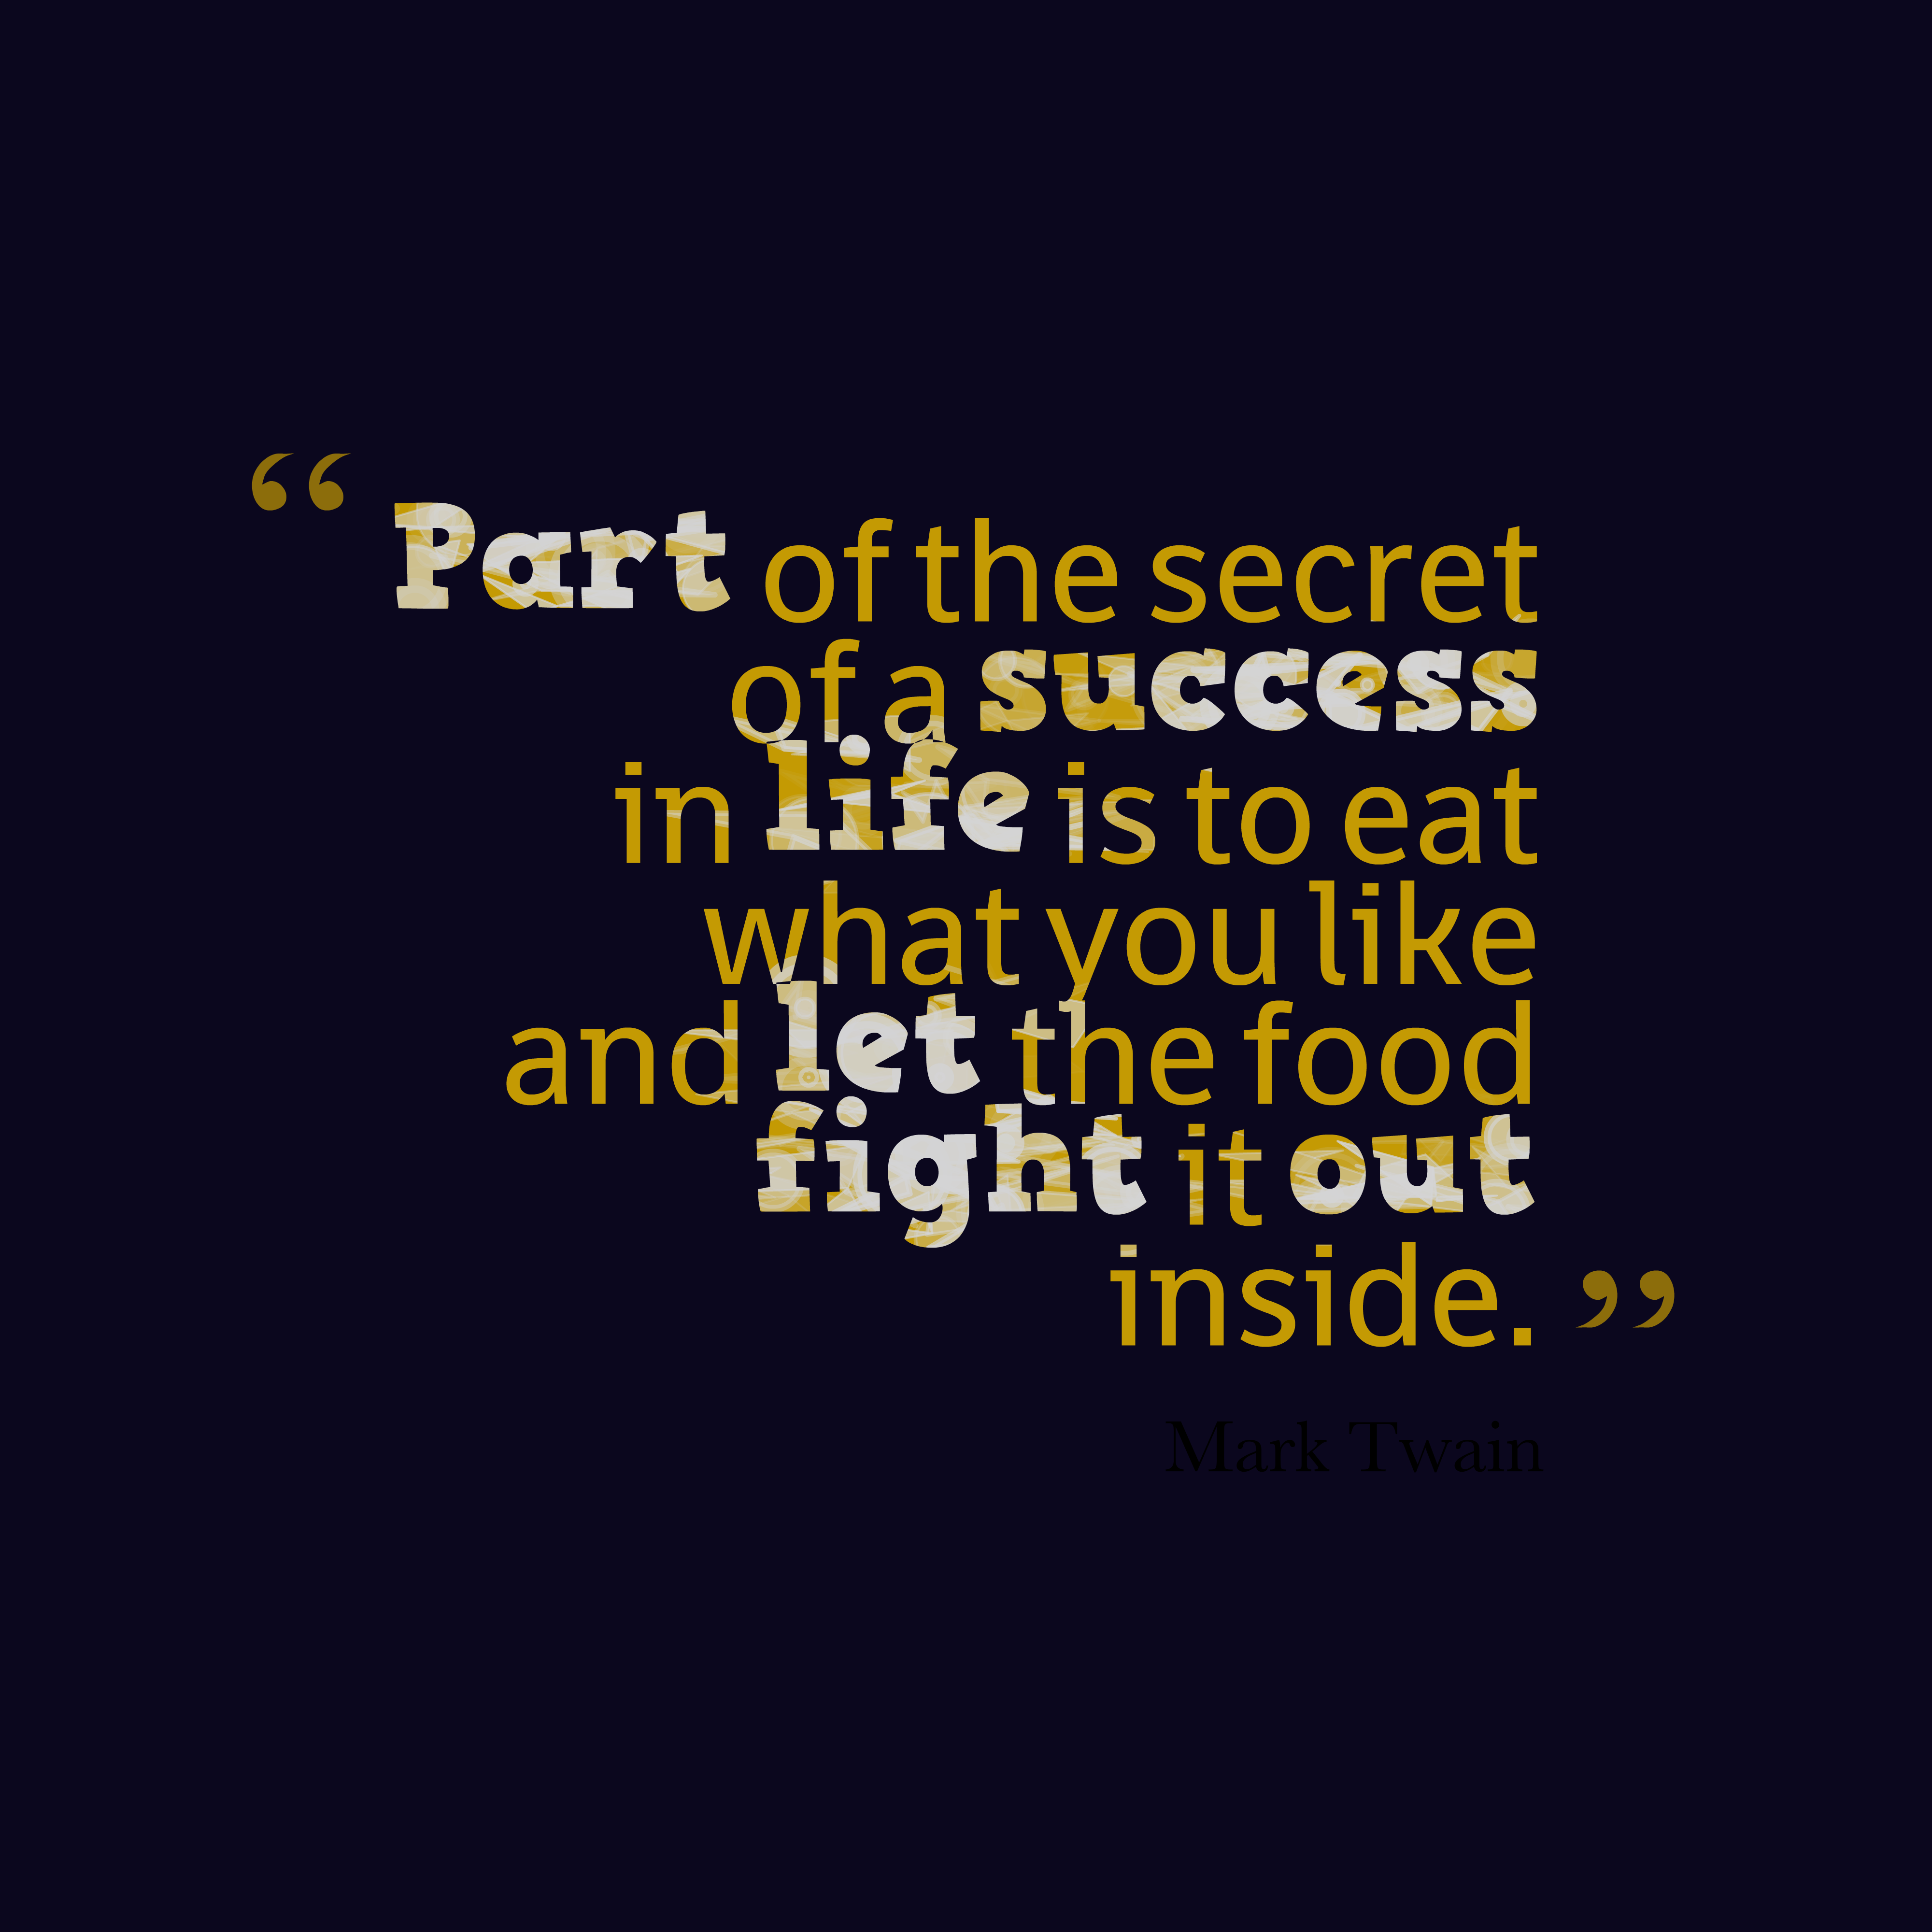 Quotes image of Part of the secret of a success in life is to eat what you like and let the food fight it out inside.